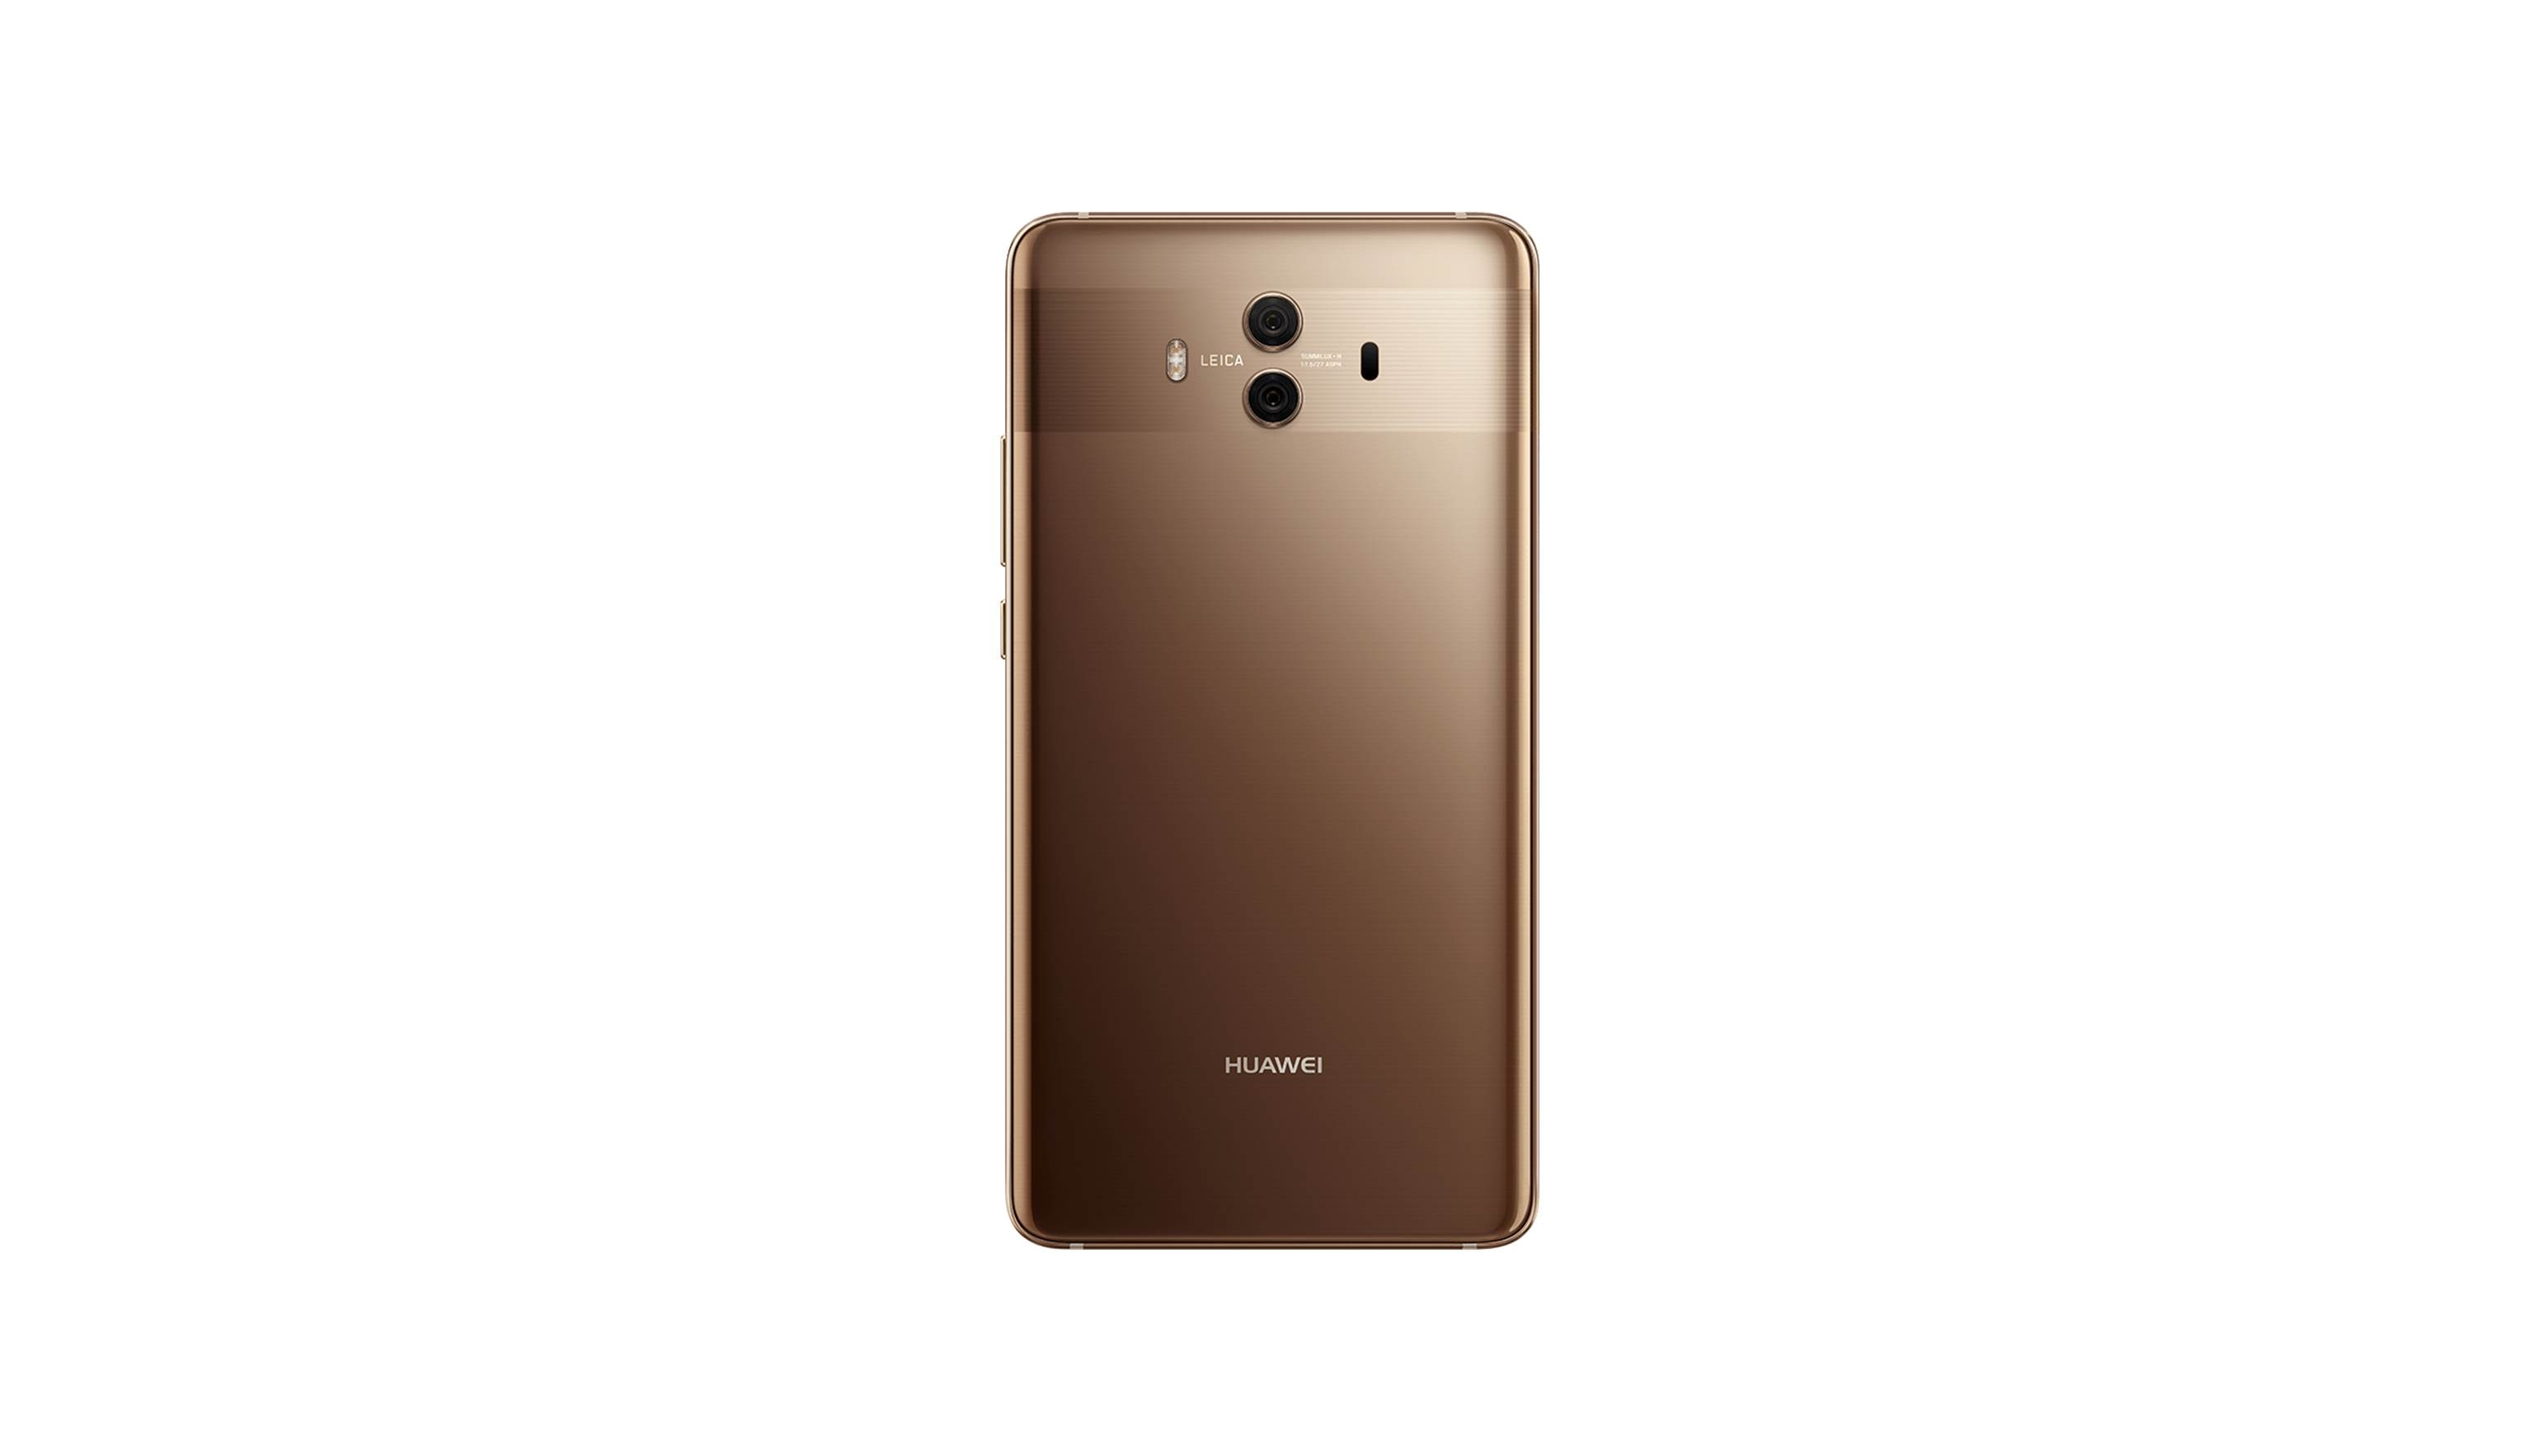 Huawei Mate 10 (2017) - Mocha Brown (3)